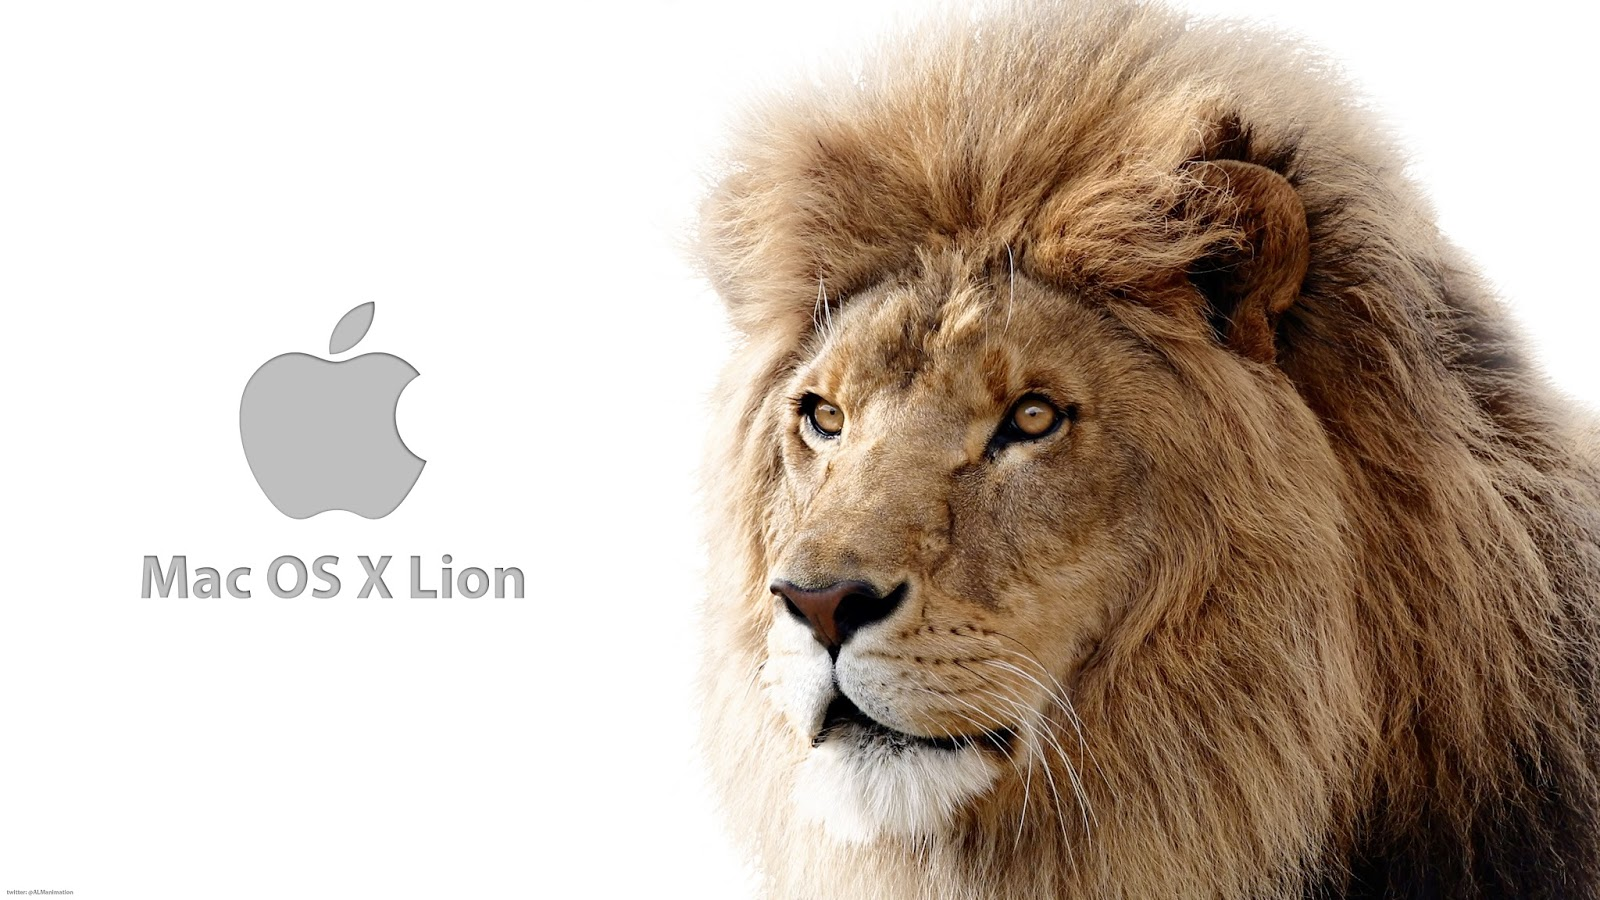 mac os x lion free download for macbook